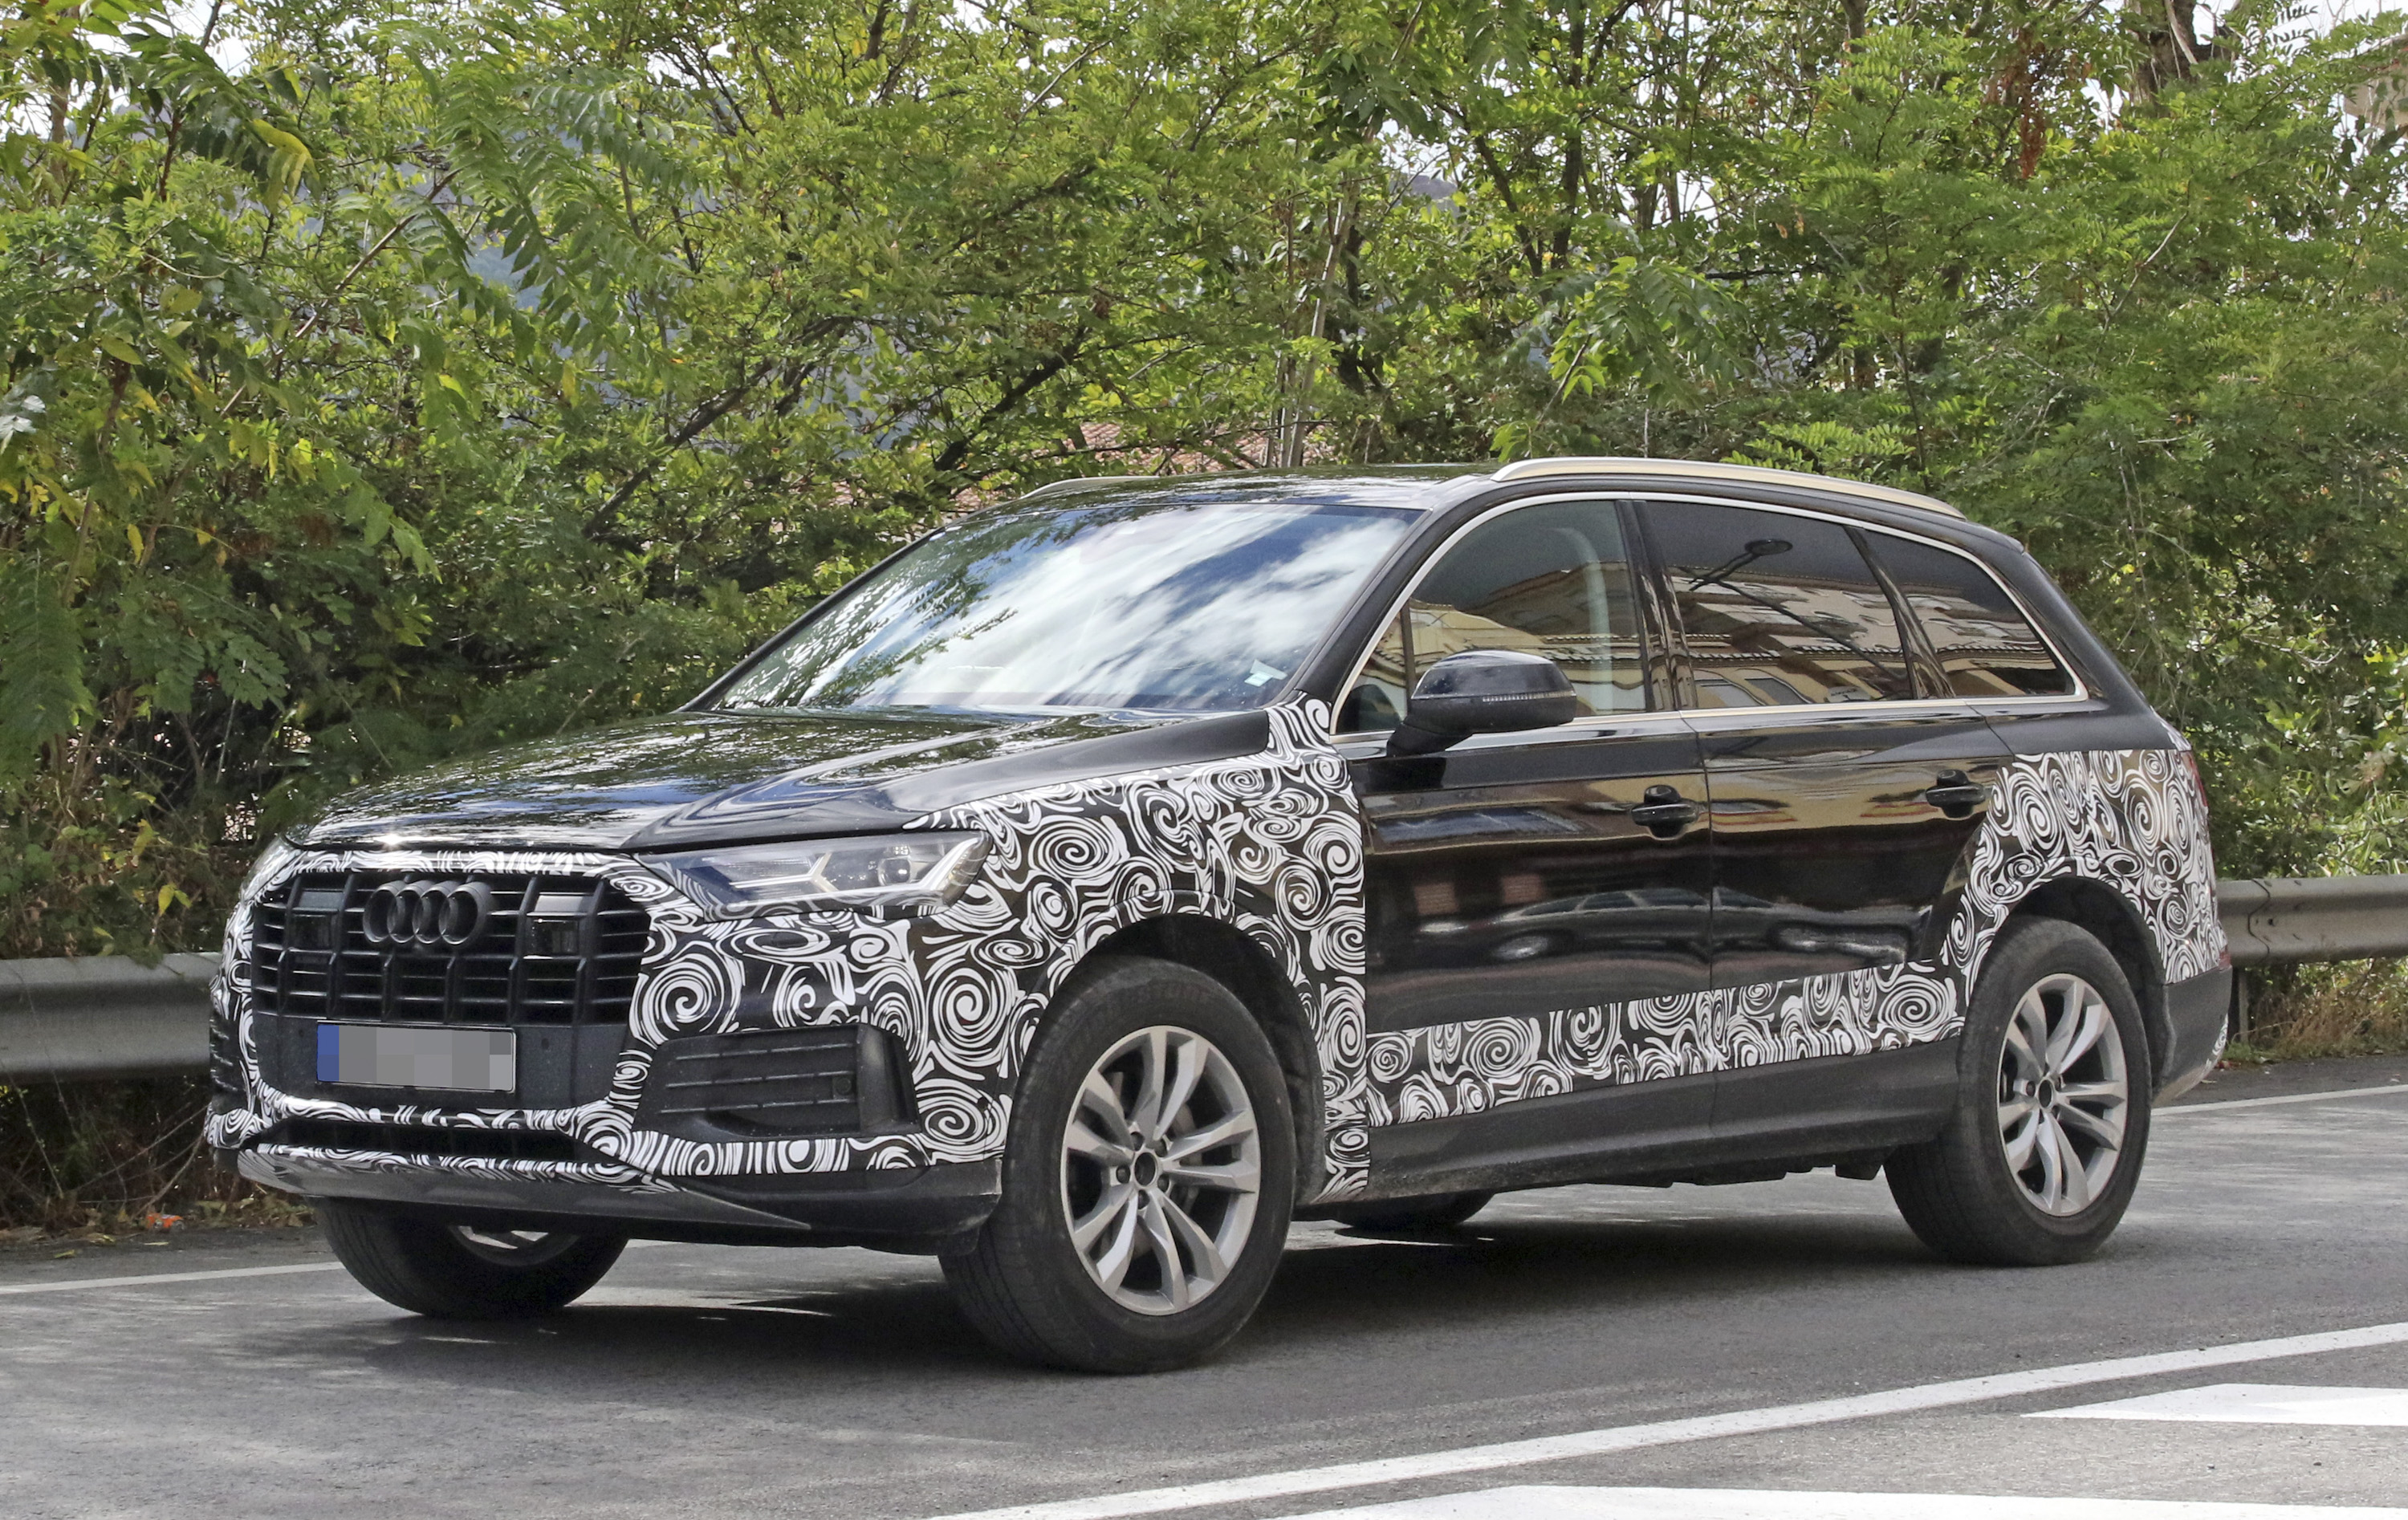 2020 Audi Q7 Top Speed